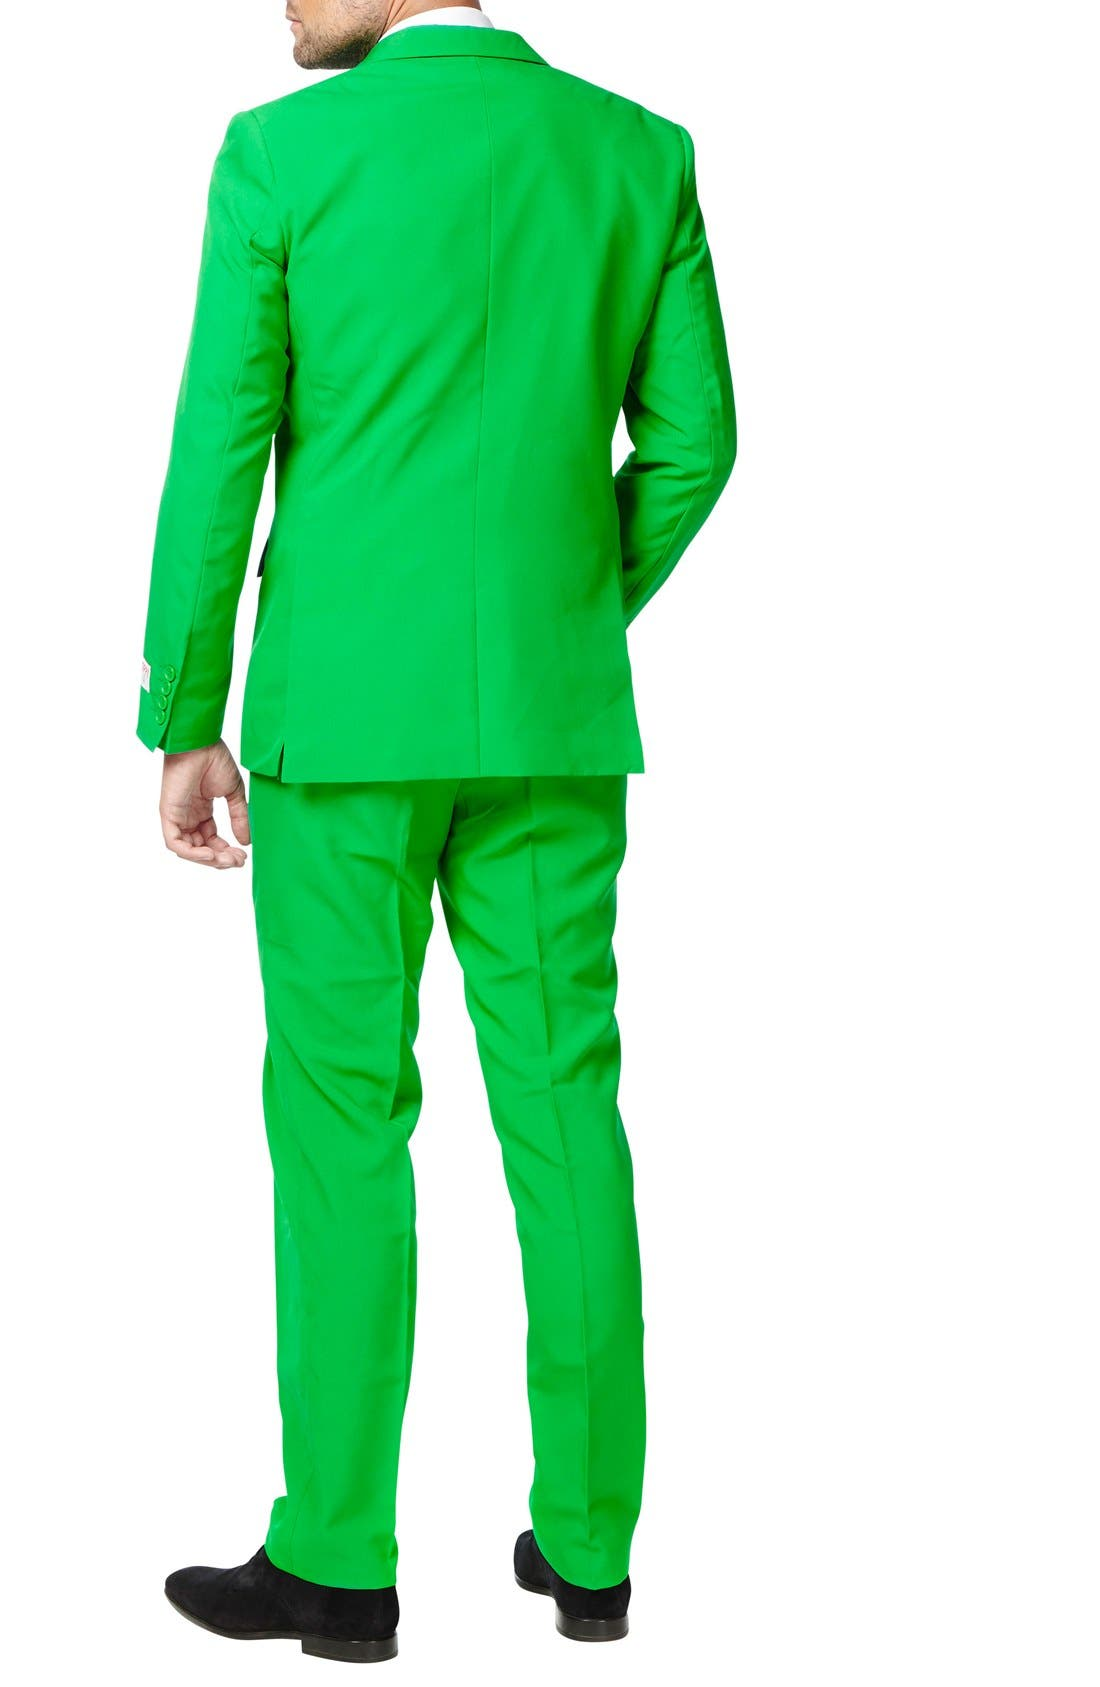 'Evergreen' Trim Fit Suit with Tie,                             Alternate thumbnail 2, color,                             300